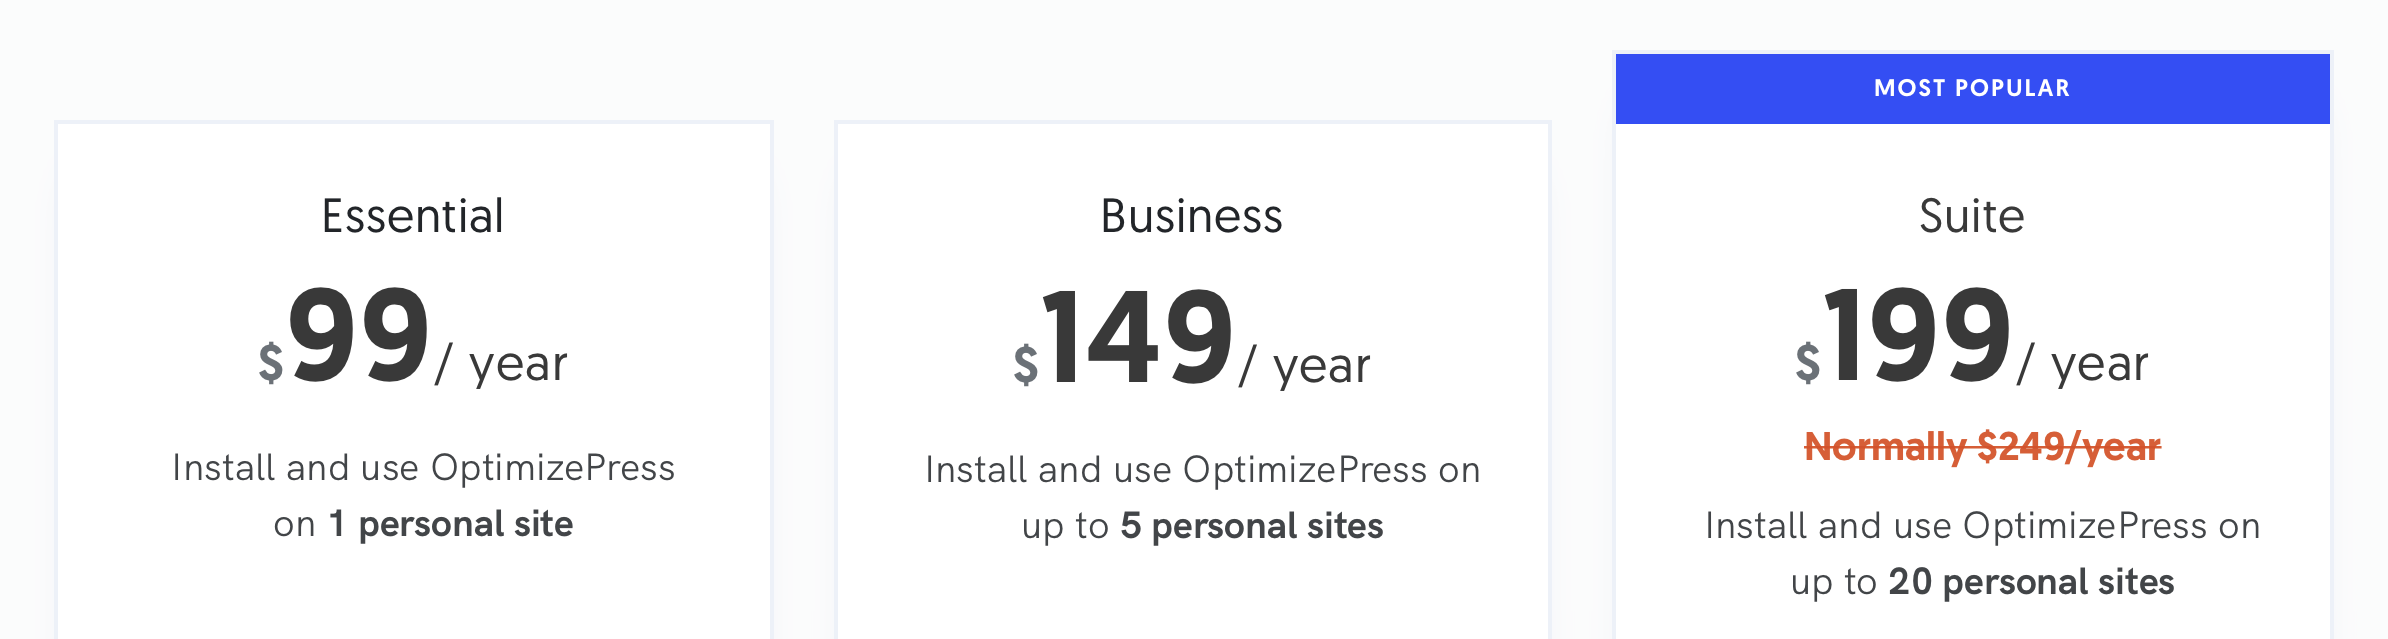 Optimizepress pricing 2020